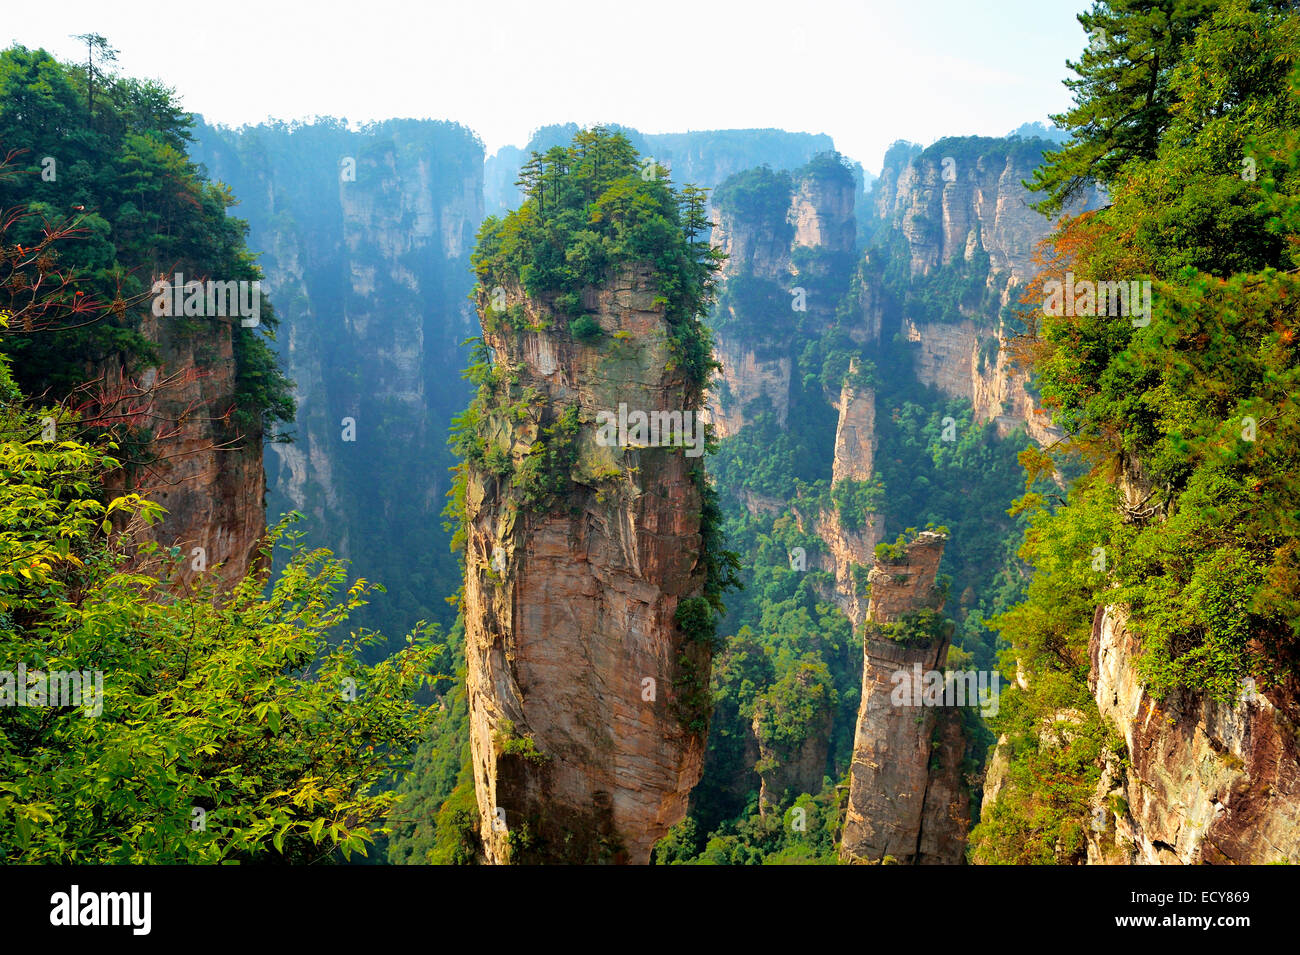 'Avatar' mountains with vertical quartz sandstone rocks, Zhangjiajie National Park, Hunan Province, China - Stock Image